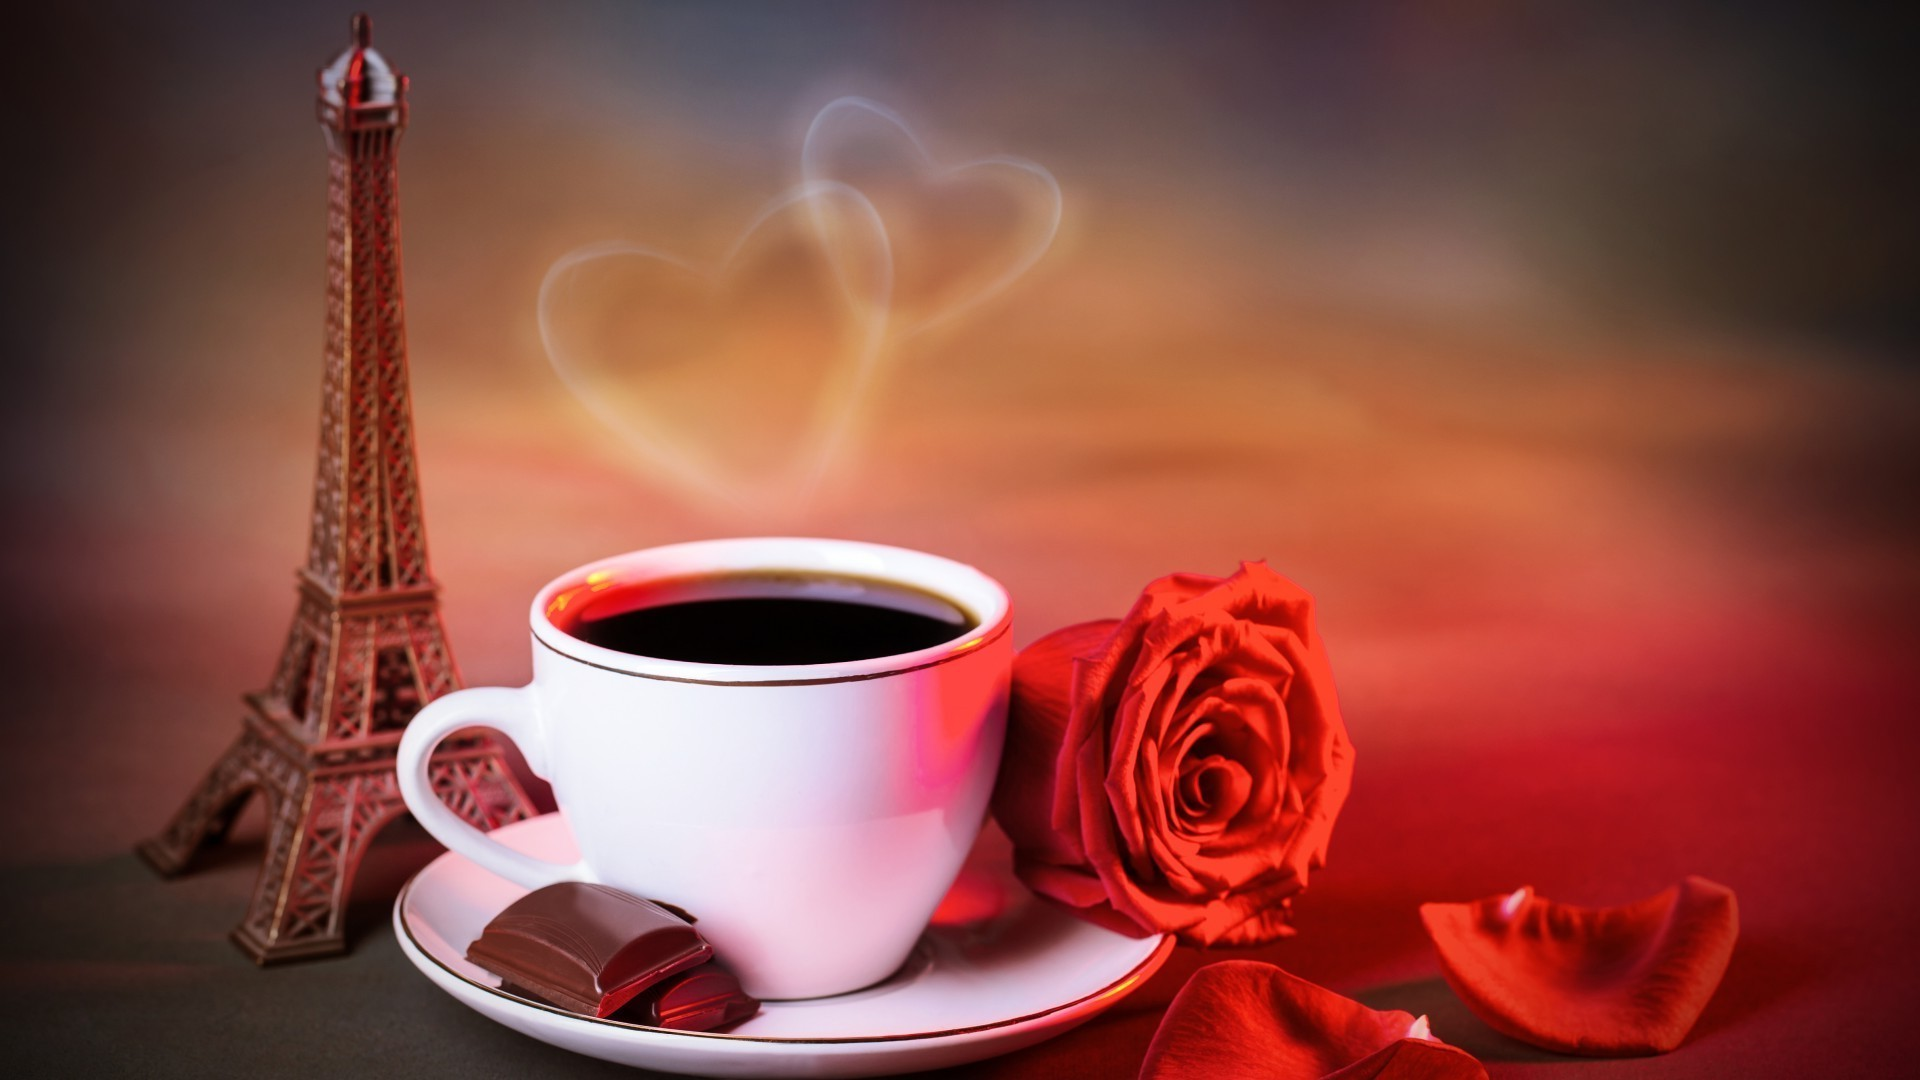 Coffee,rose,love,Paris. Android wallpapers for free.